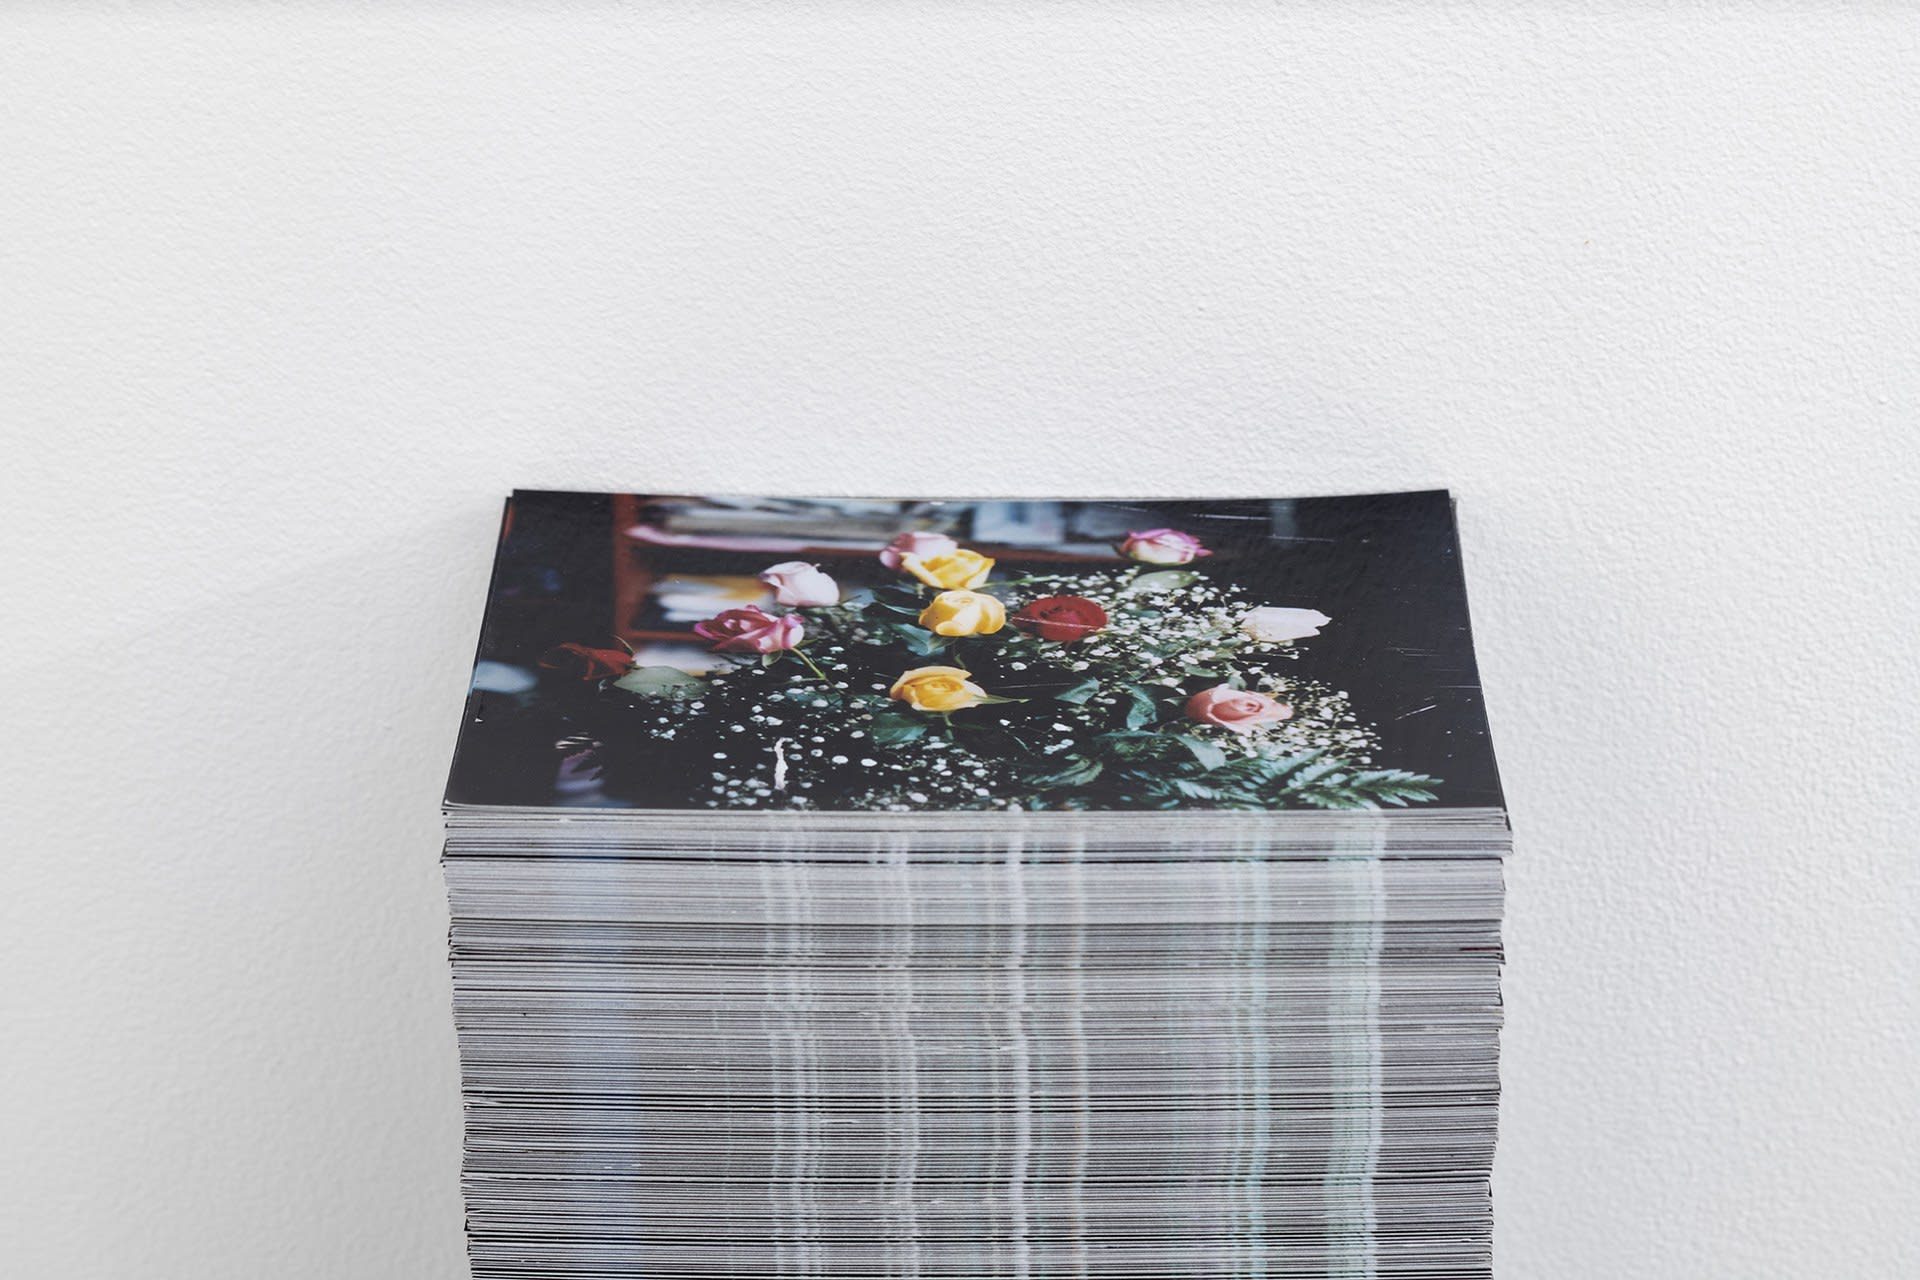 1,450 photographs of a bouquet of flowers